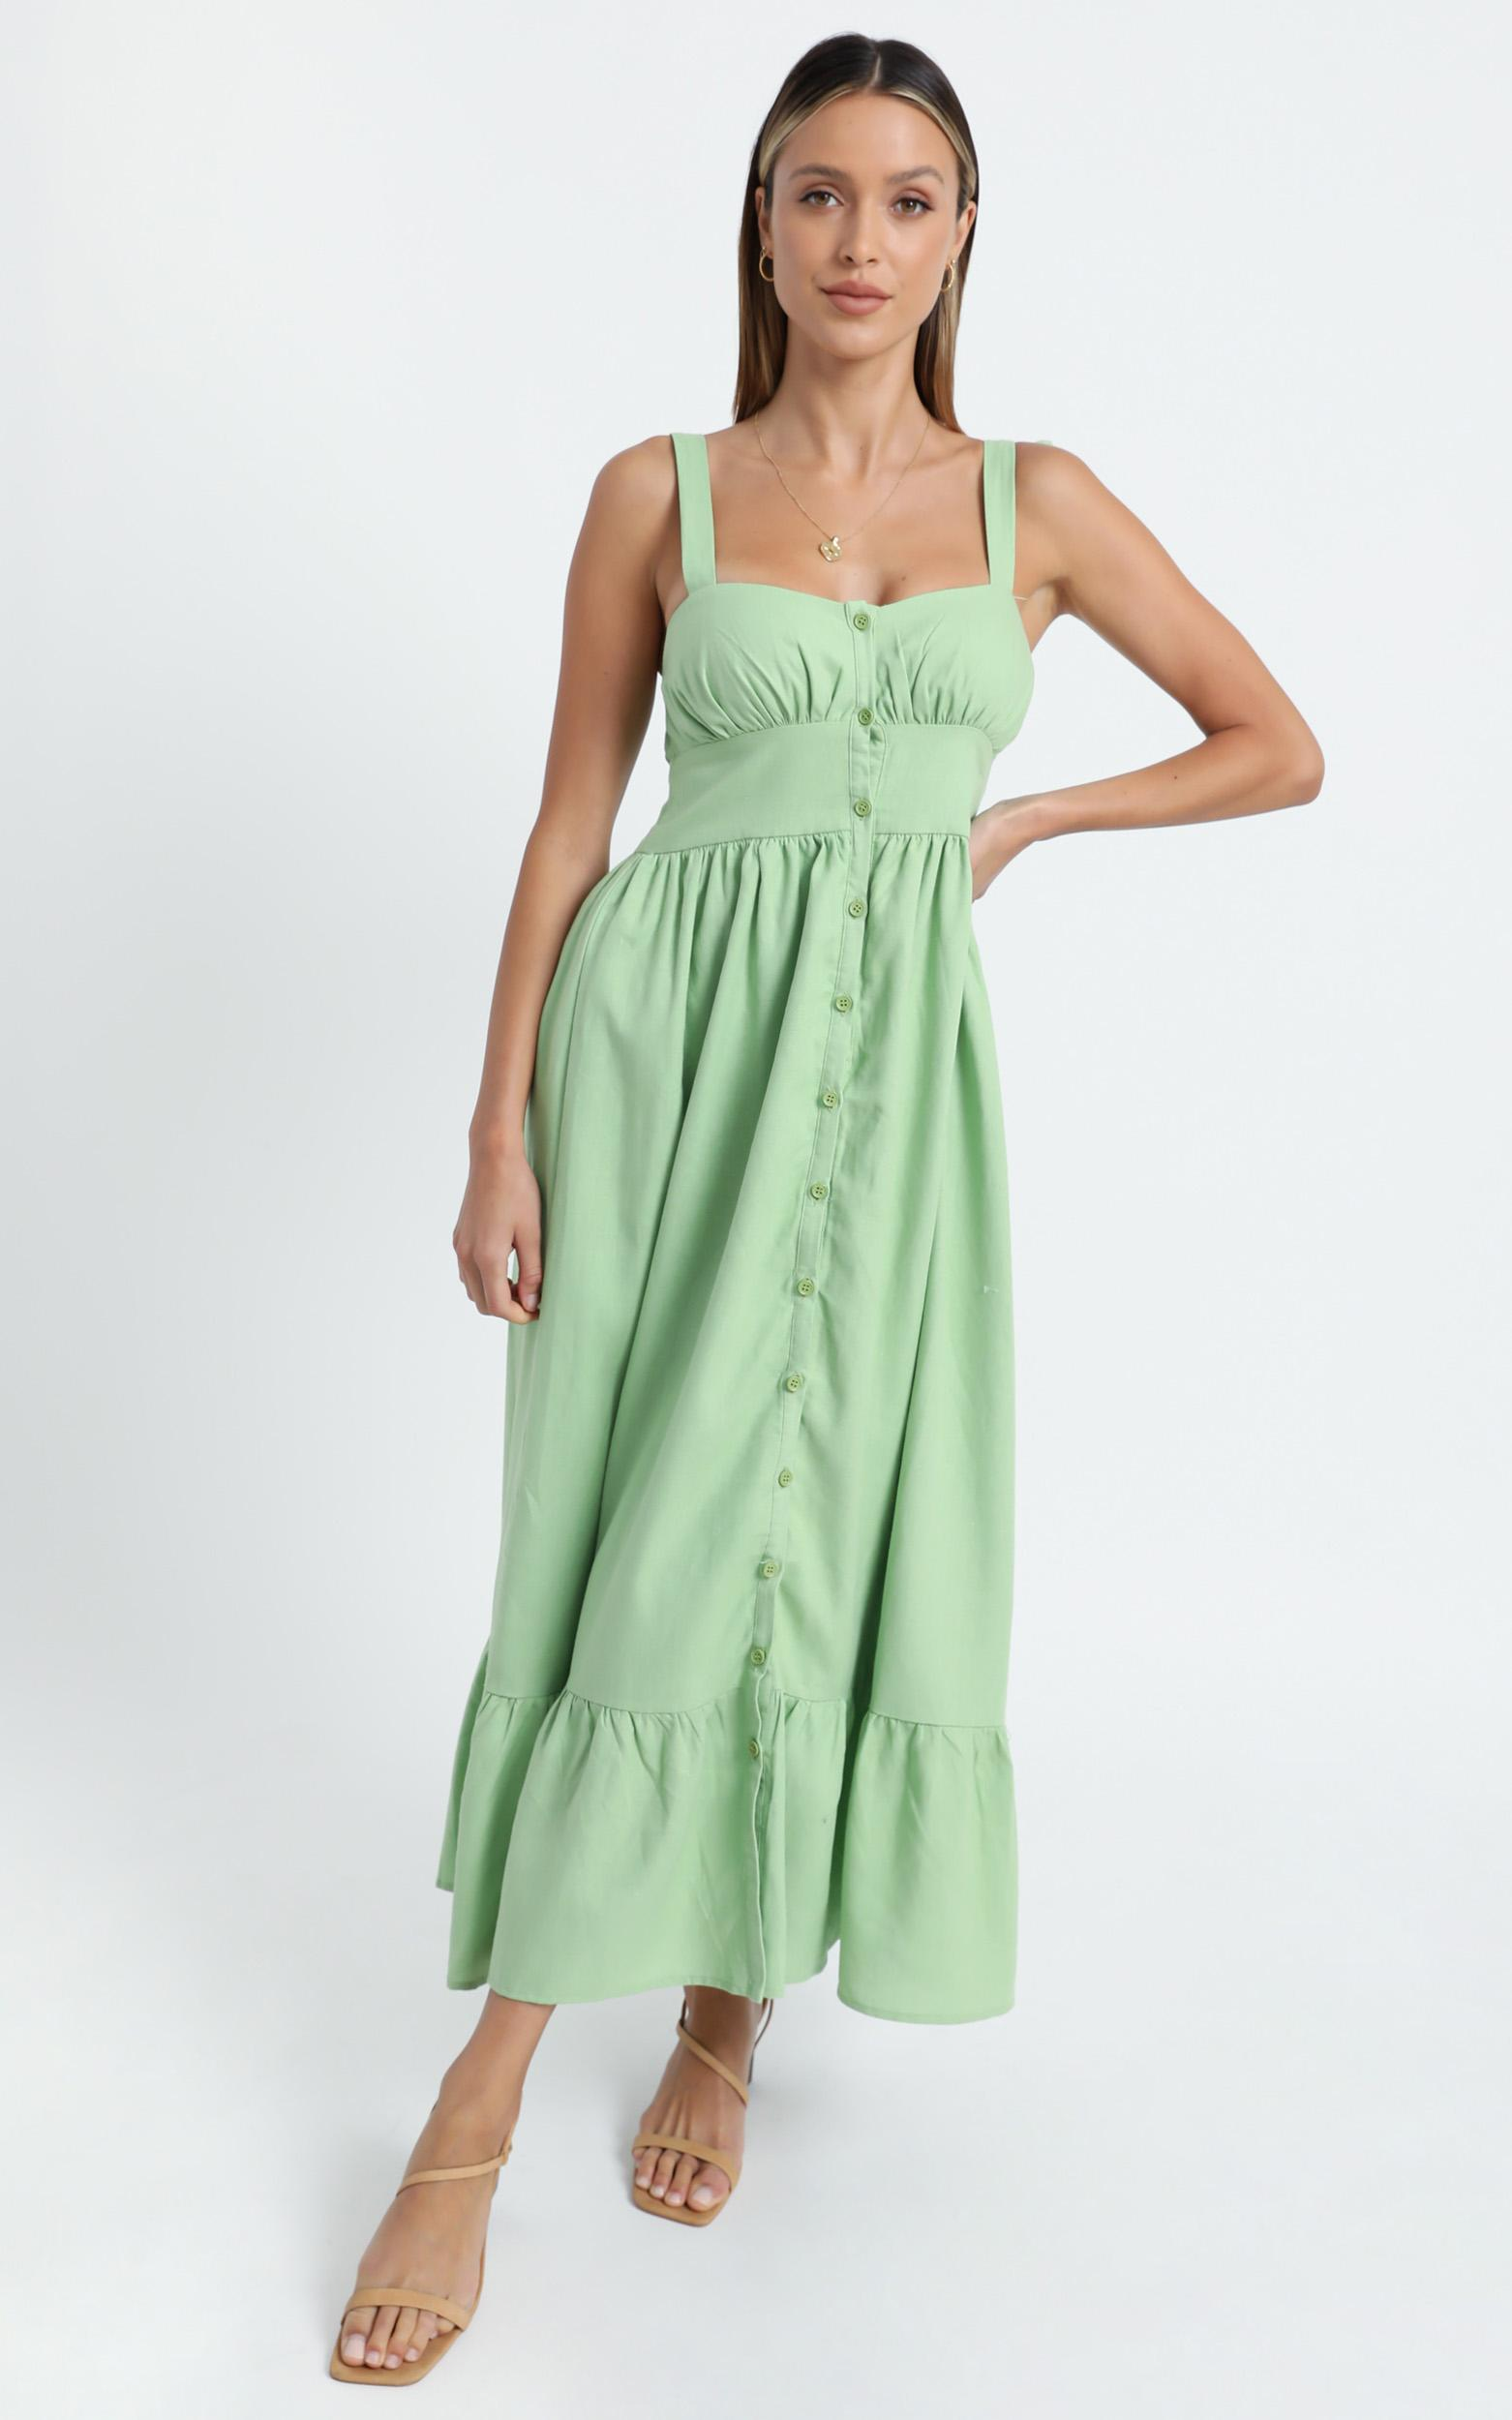 Marvina Dress in Green - 6 (XS), Green, hi-res image number null